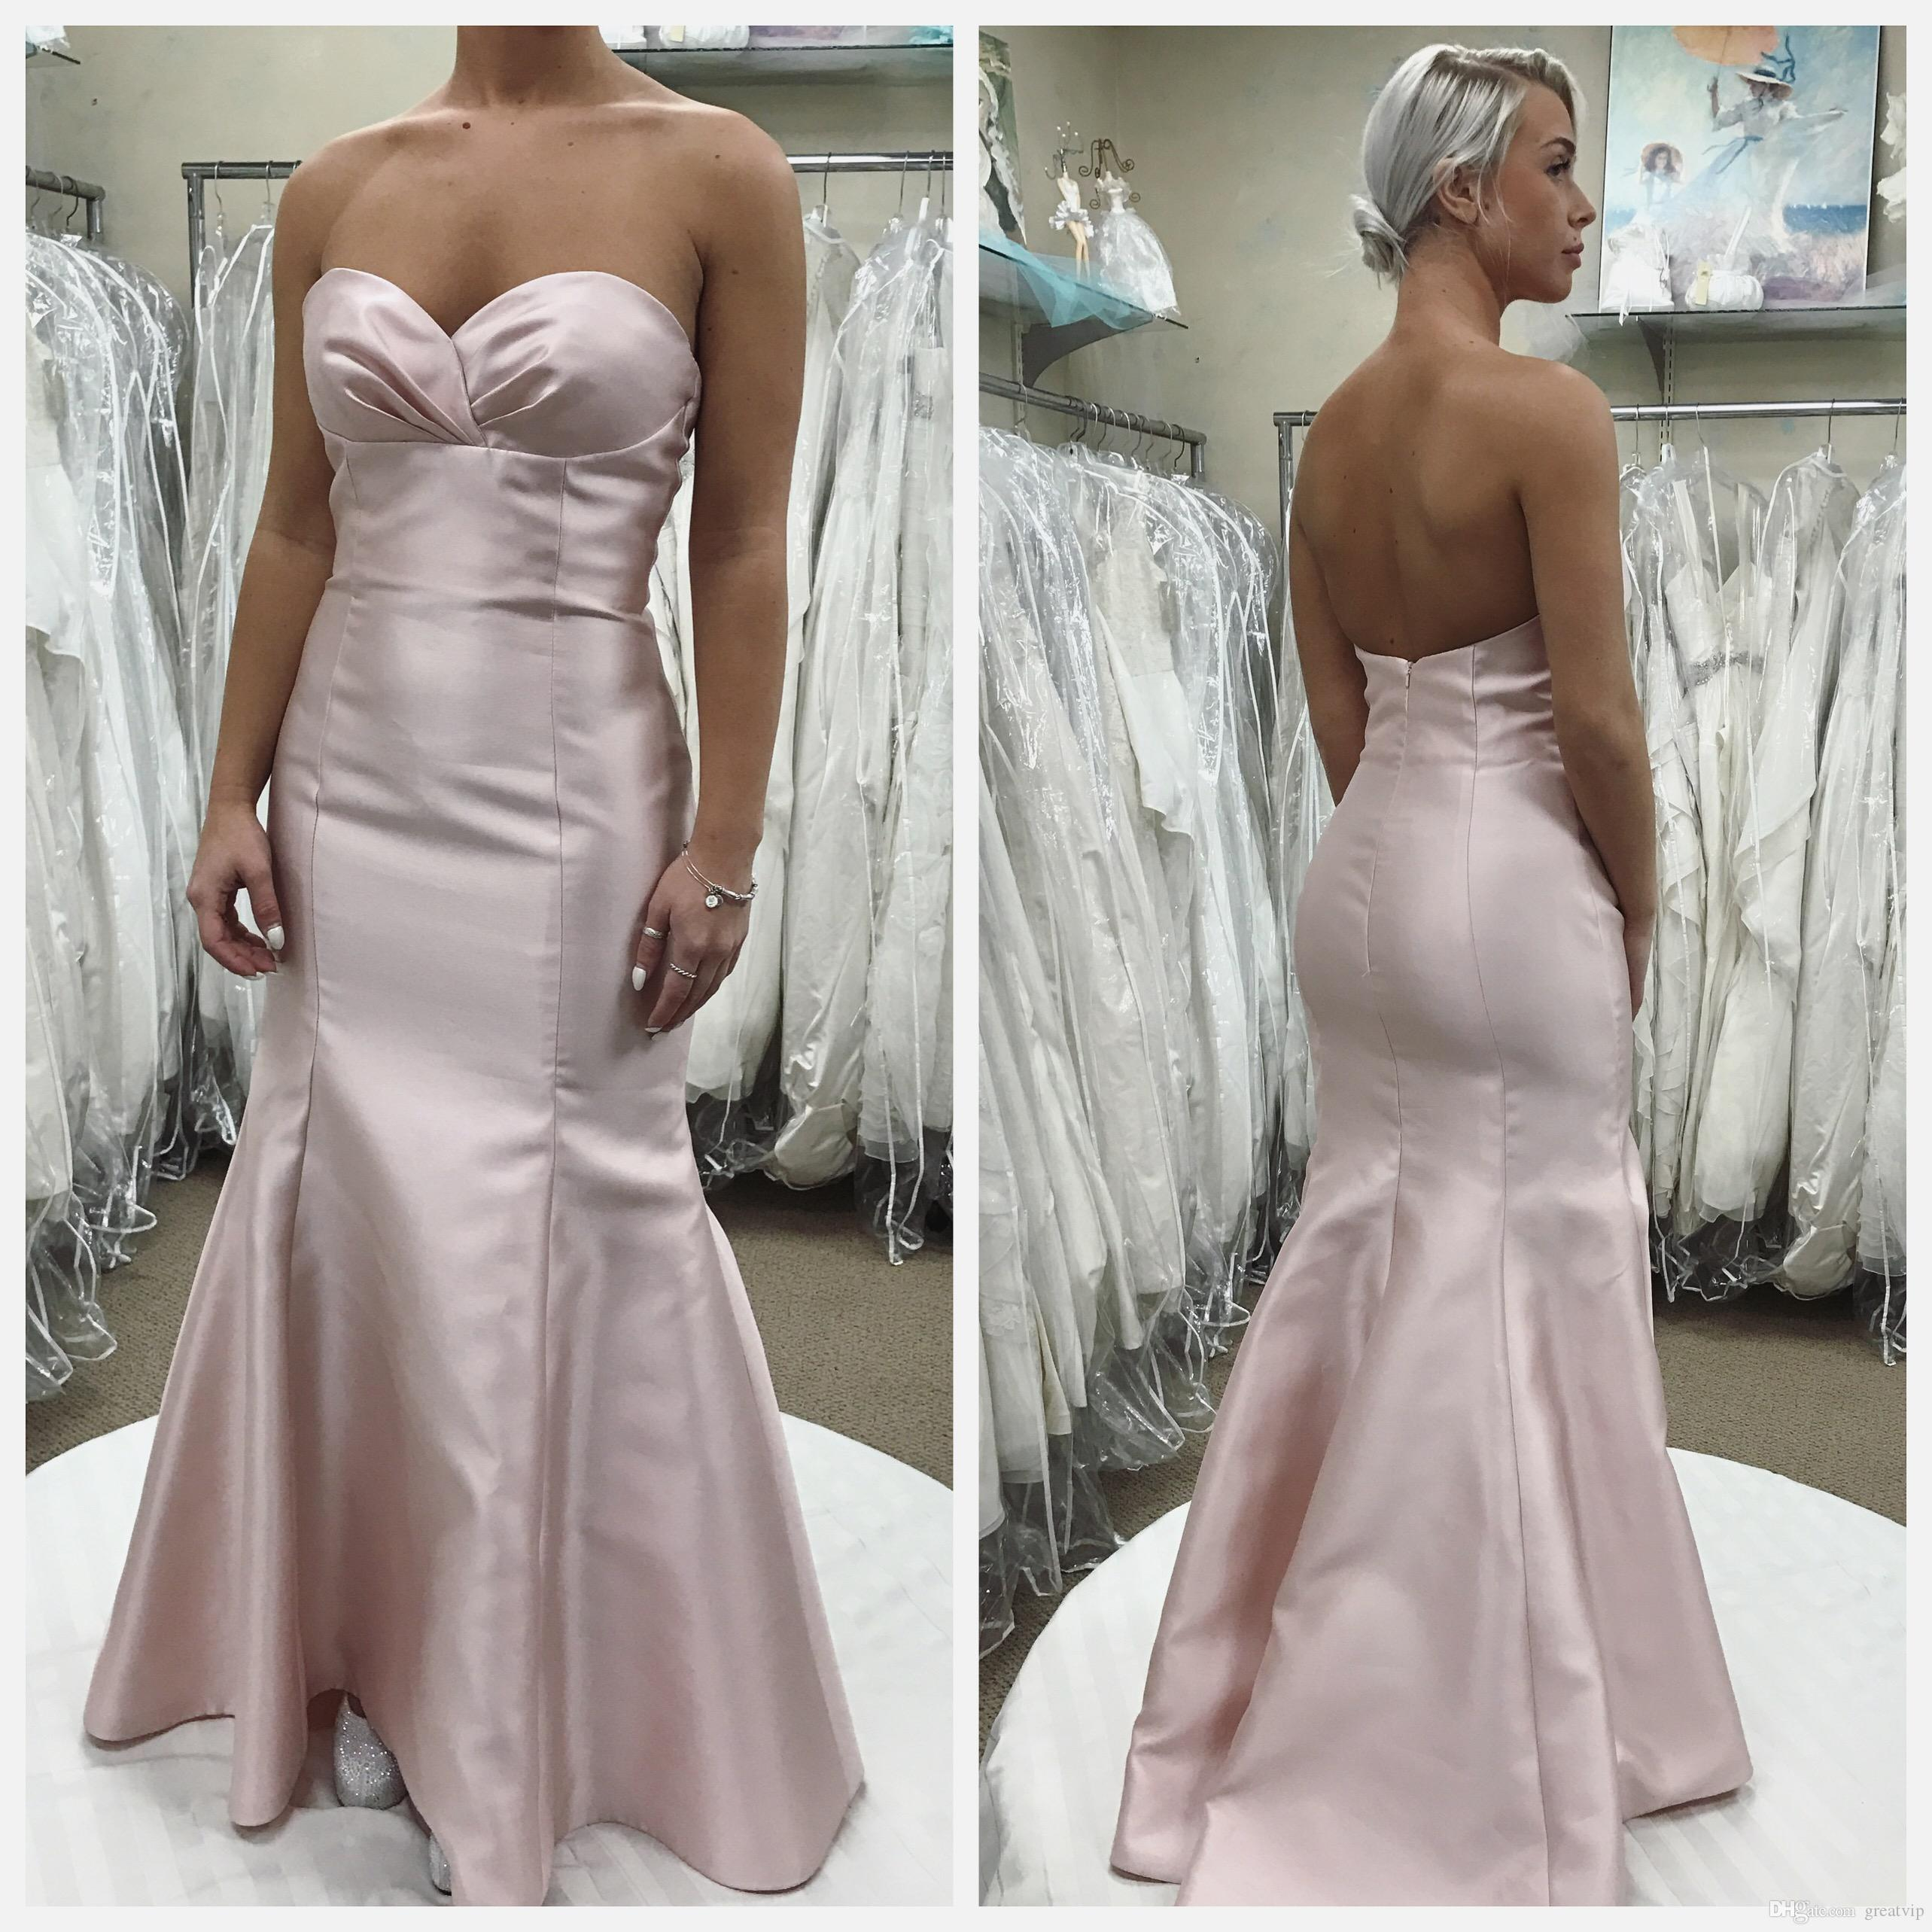 411d43894b28 Places Near Me That Will Buy My Prom Dress - raveitsafe